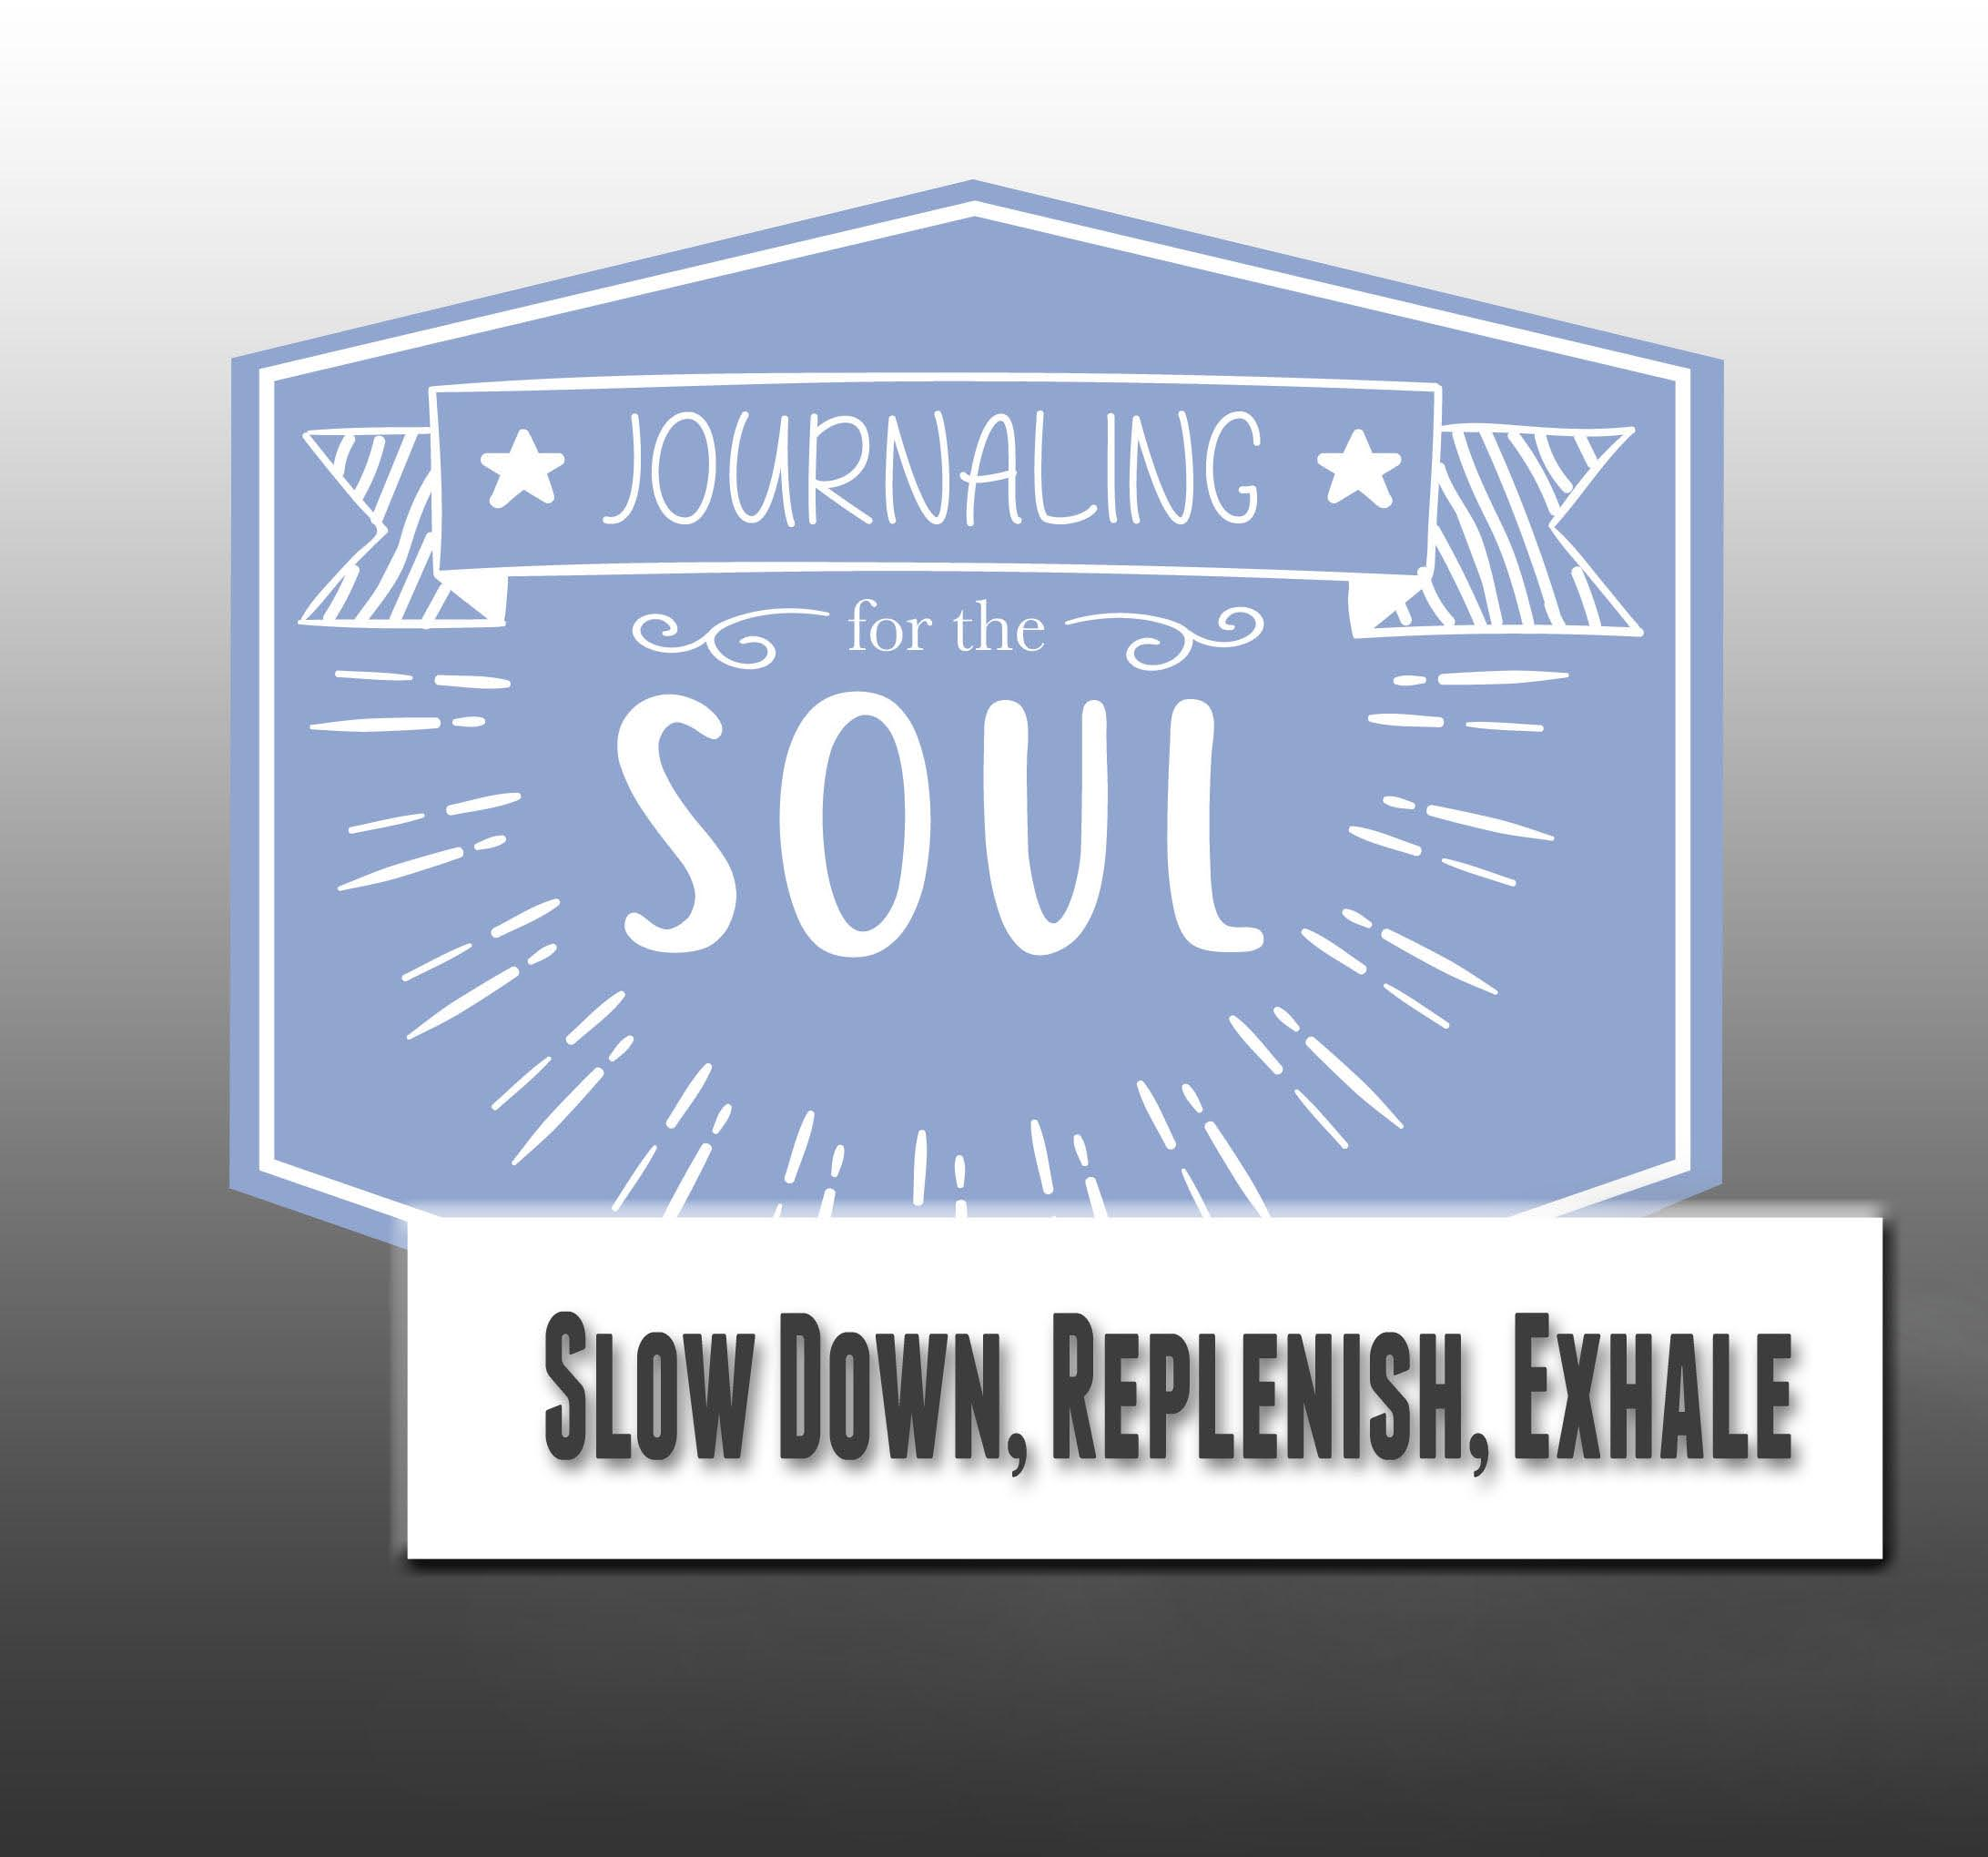 Journal for the Soul: Slow Down, Replenish, Exhale